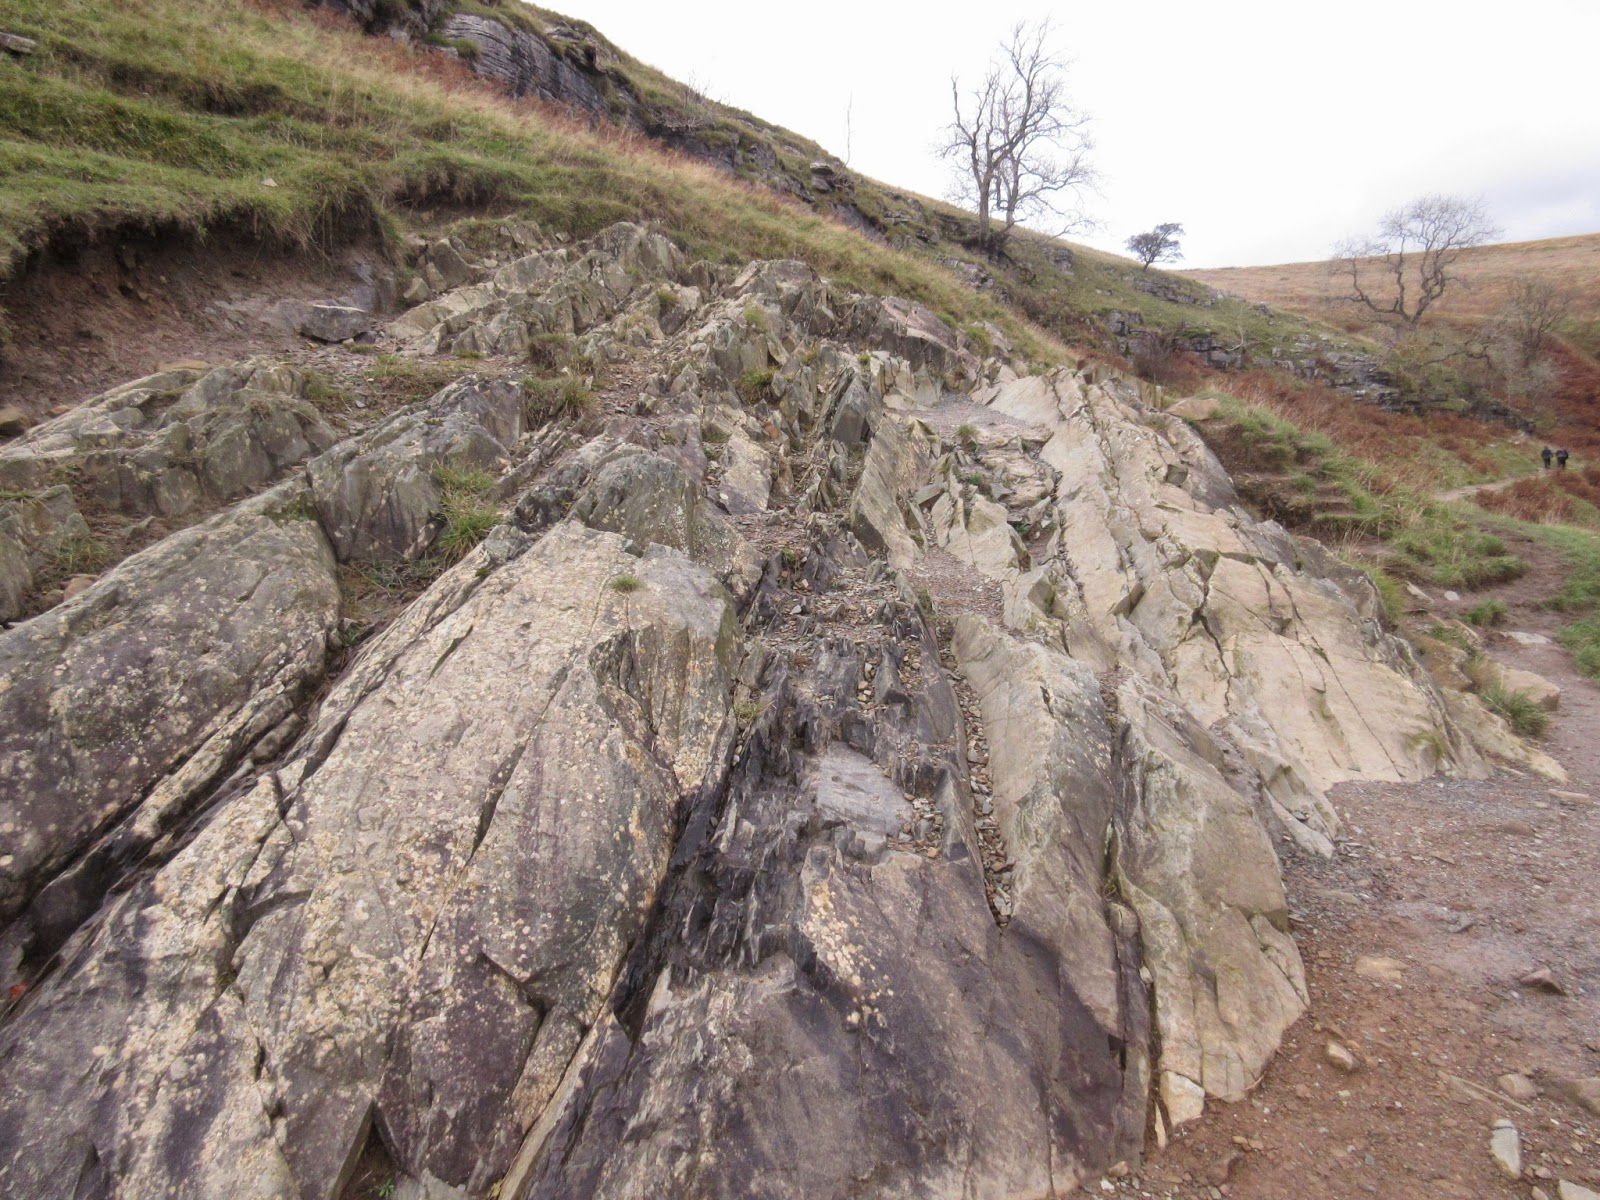 Buckling of the Ordovician rocks near Thornton Force. Stephen Oldfield